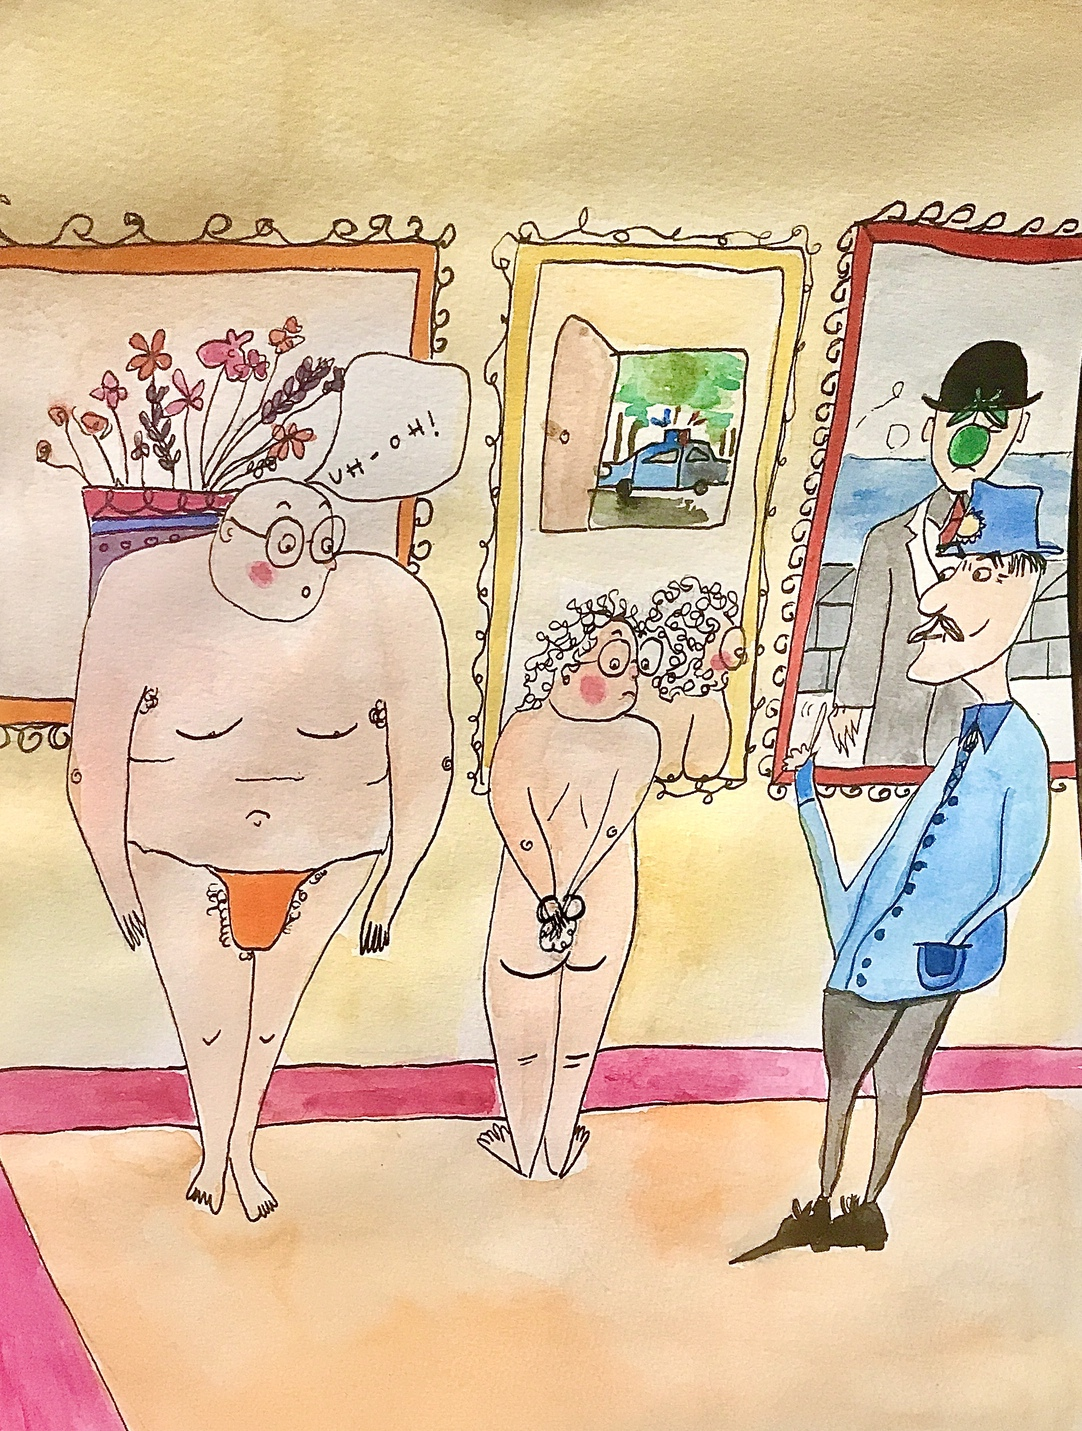 An illustration of an elderly couple standing naked and embarrassed as a police officer looks on